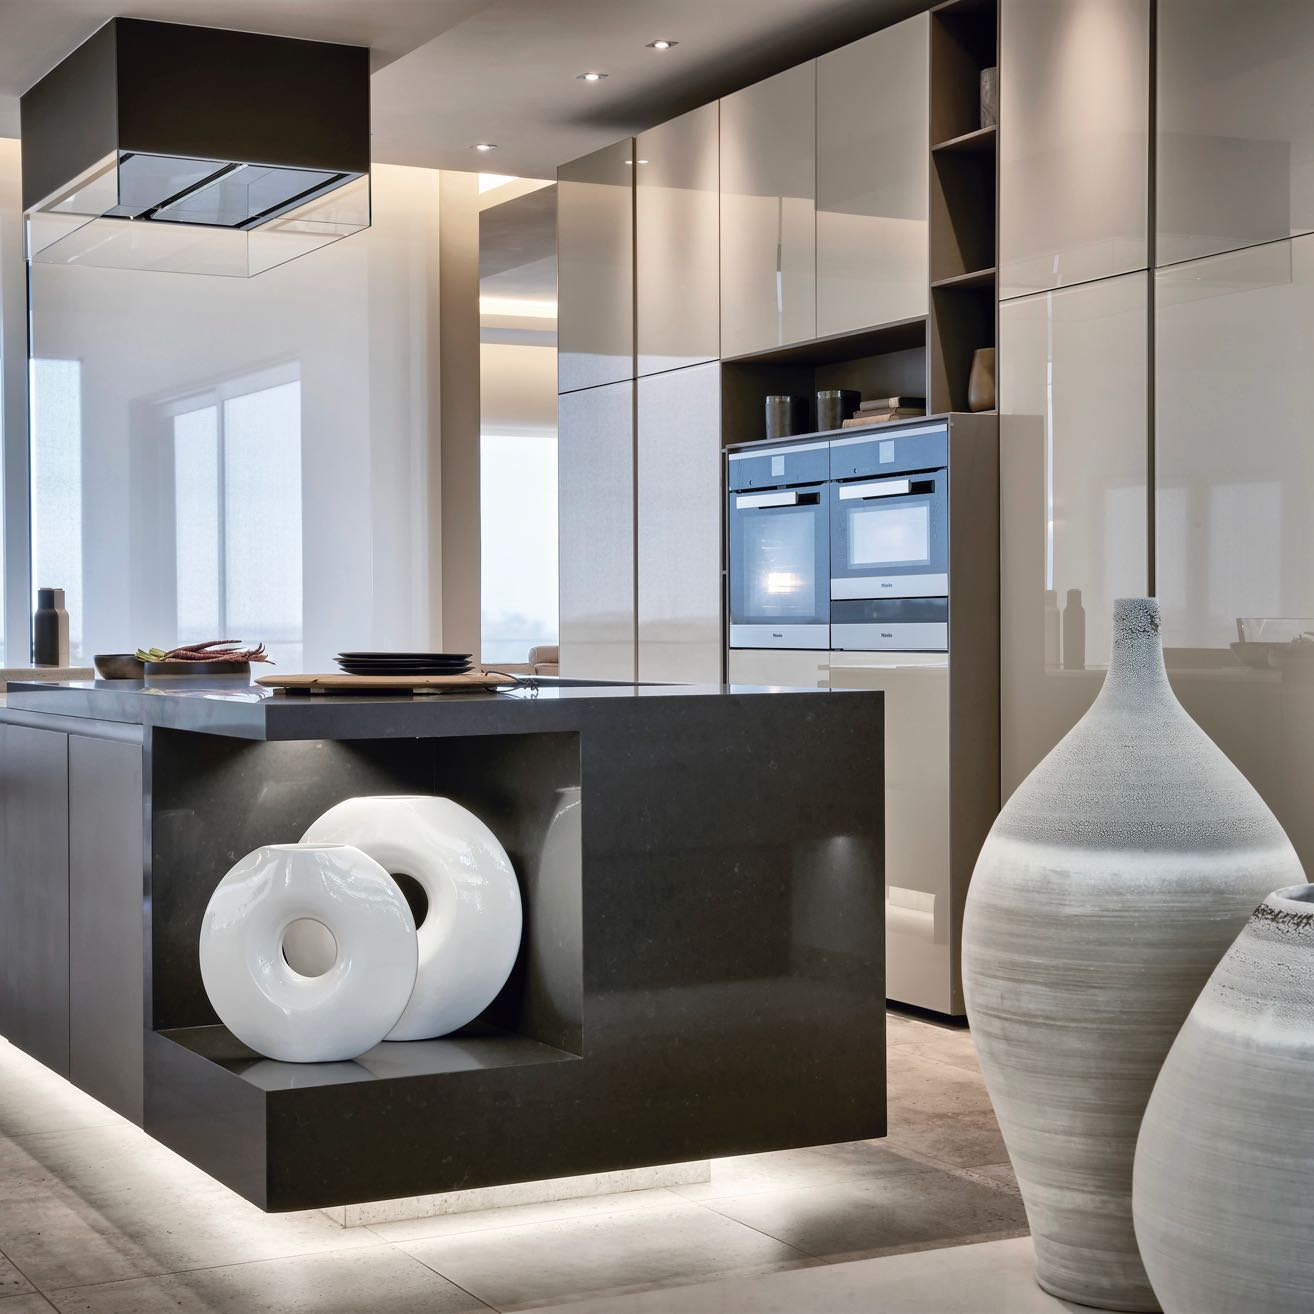 Blu Line Is A High End Kitchen Design Company Based In